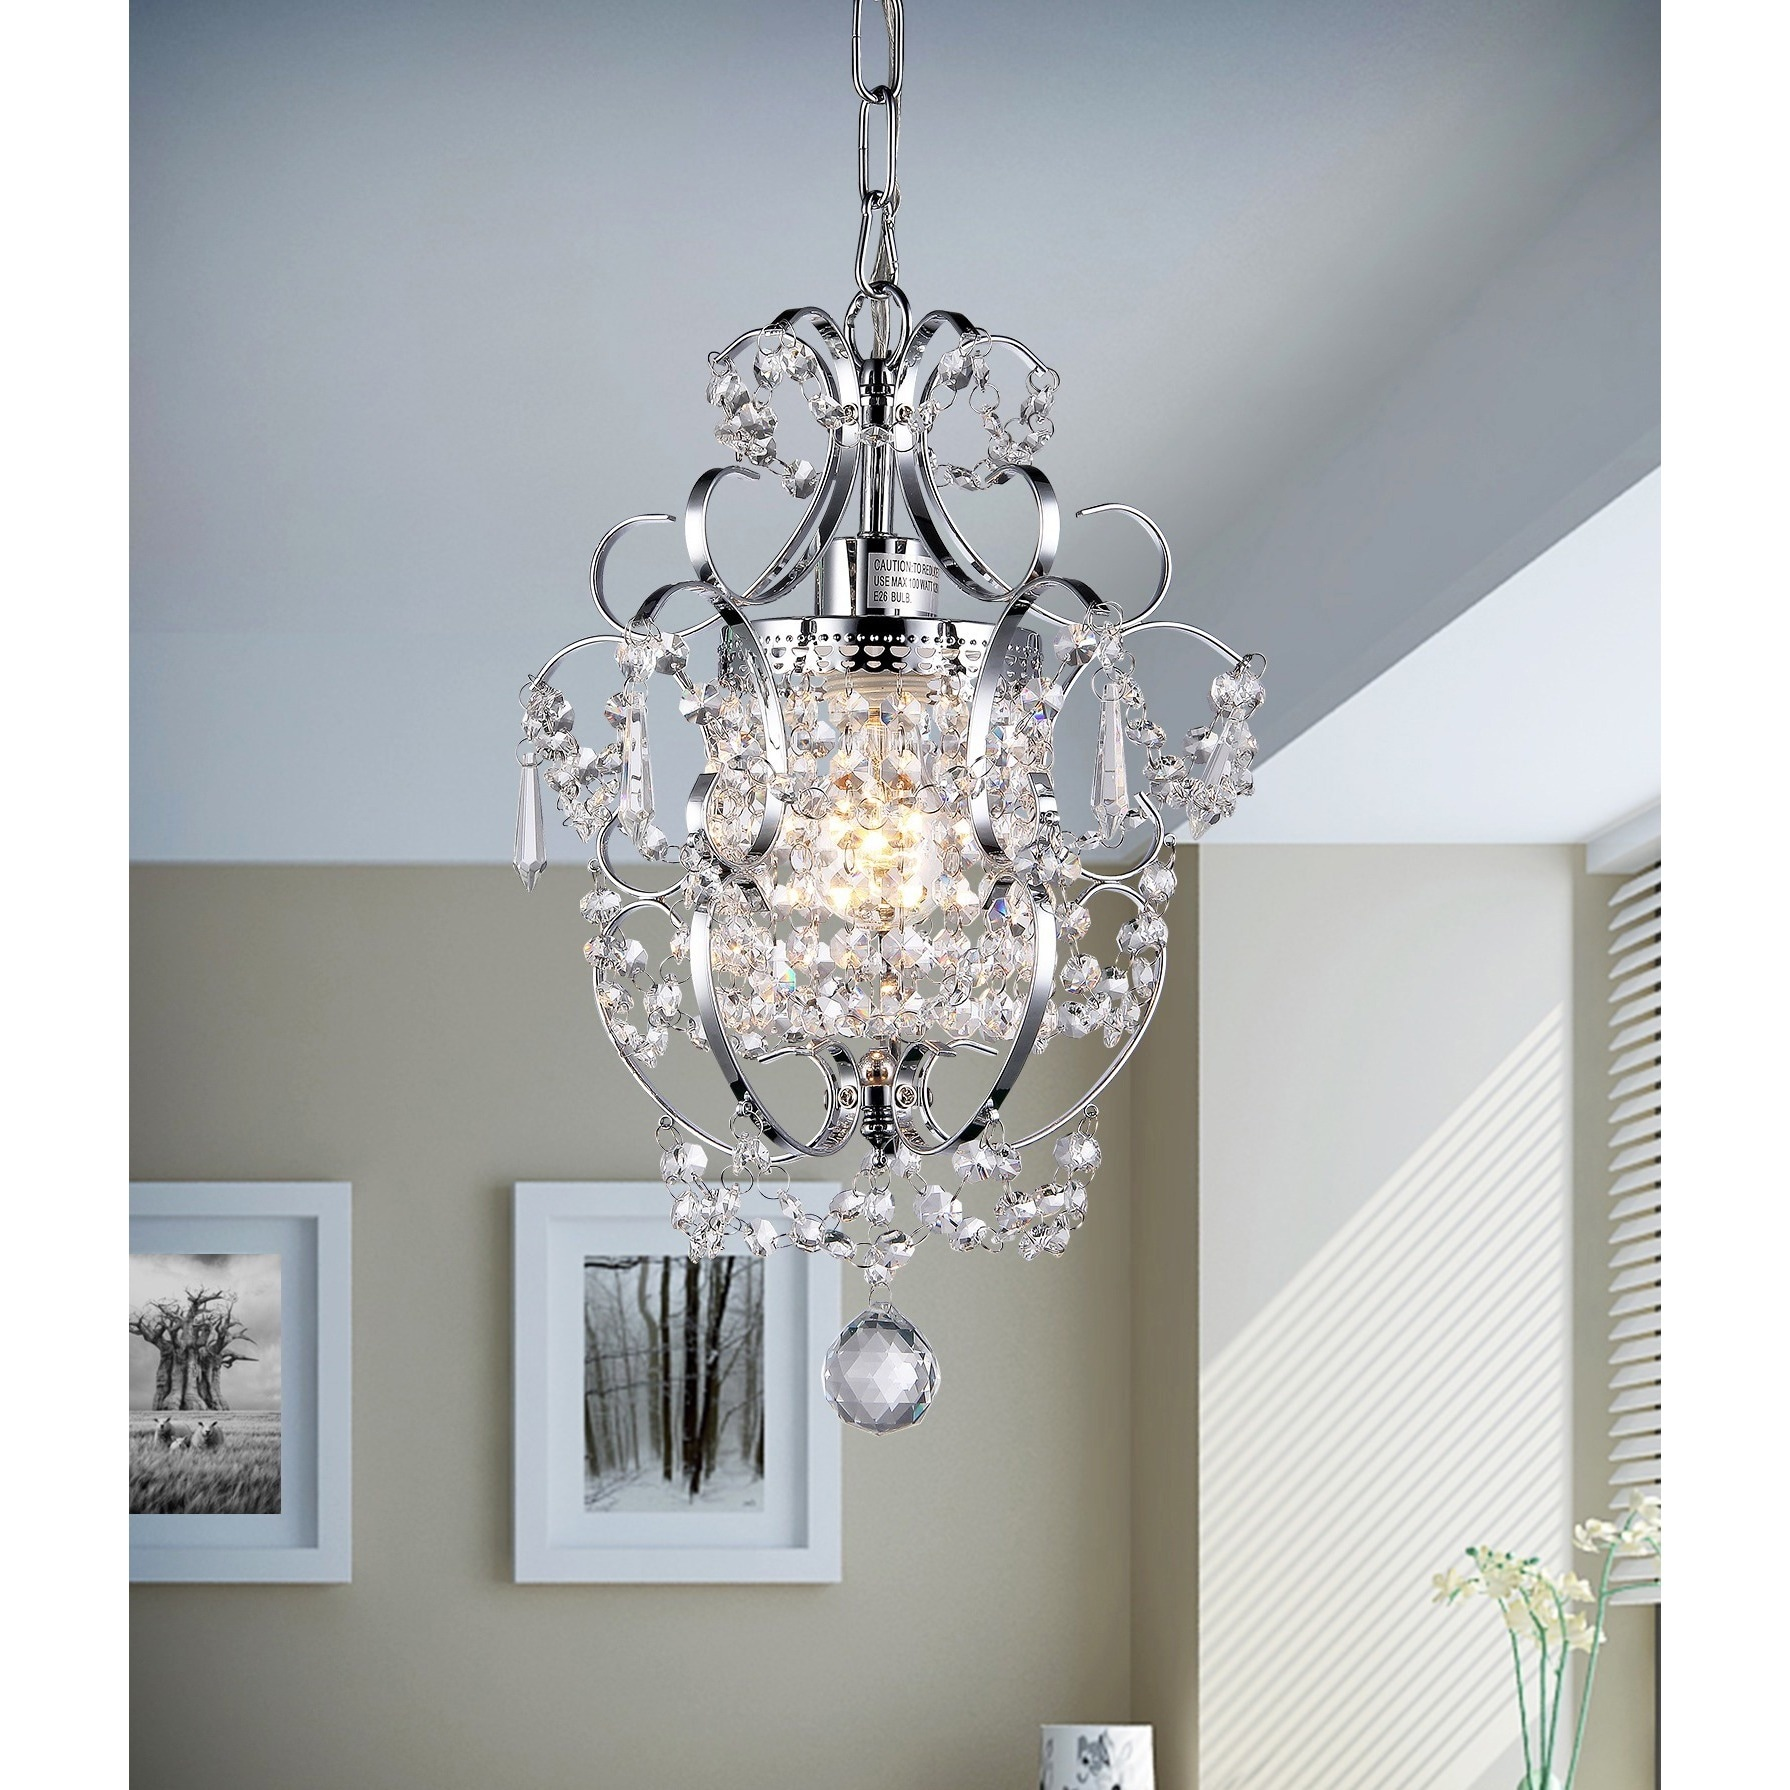 I love living single light crystal chandelier free shipping today i love living single light crystal chandelier free shipping today overstock 15529069 arubaitofo Image collections